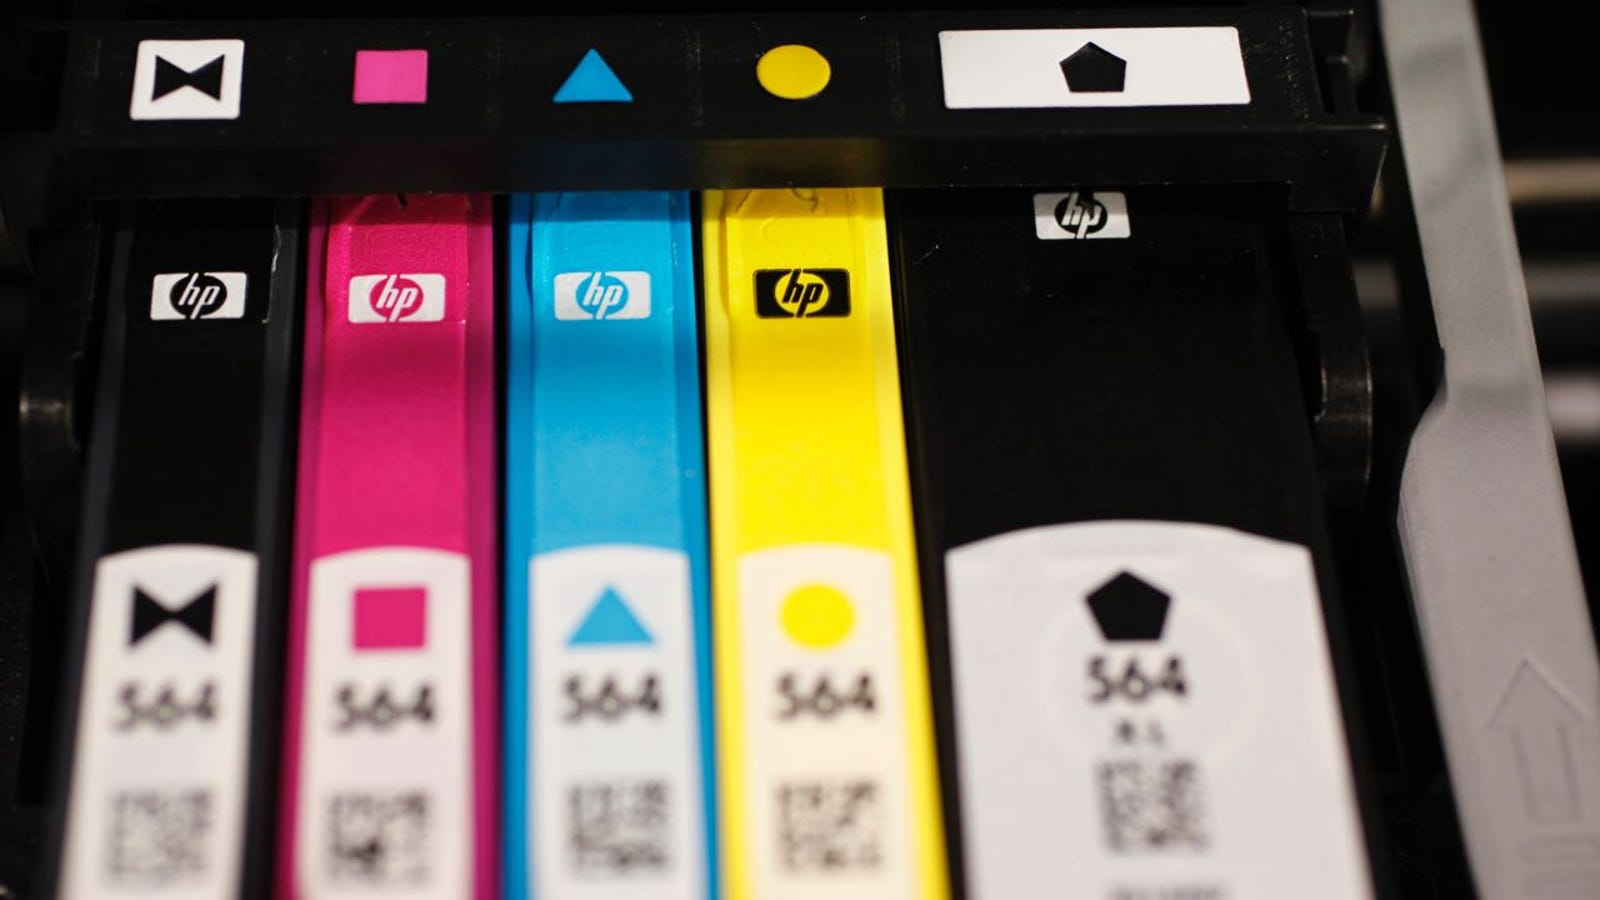 One Year After Bricking Third-Party Ink With Update, HP Is